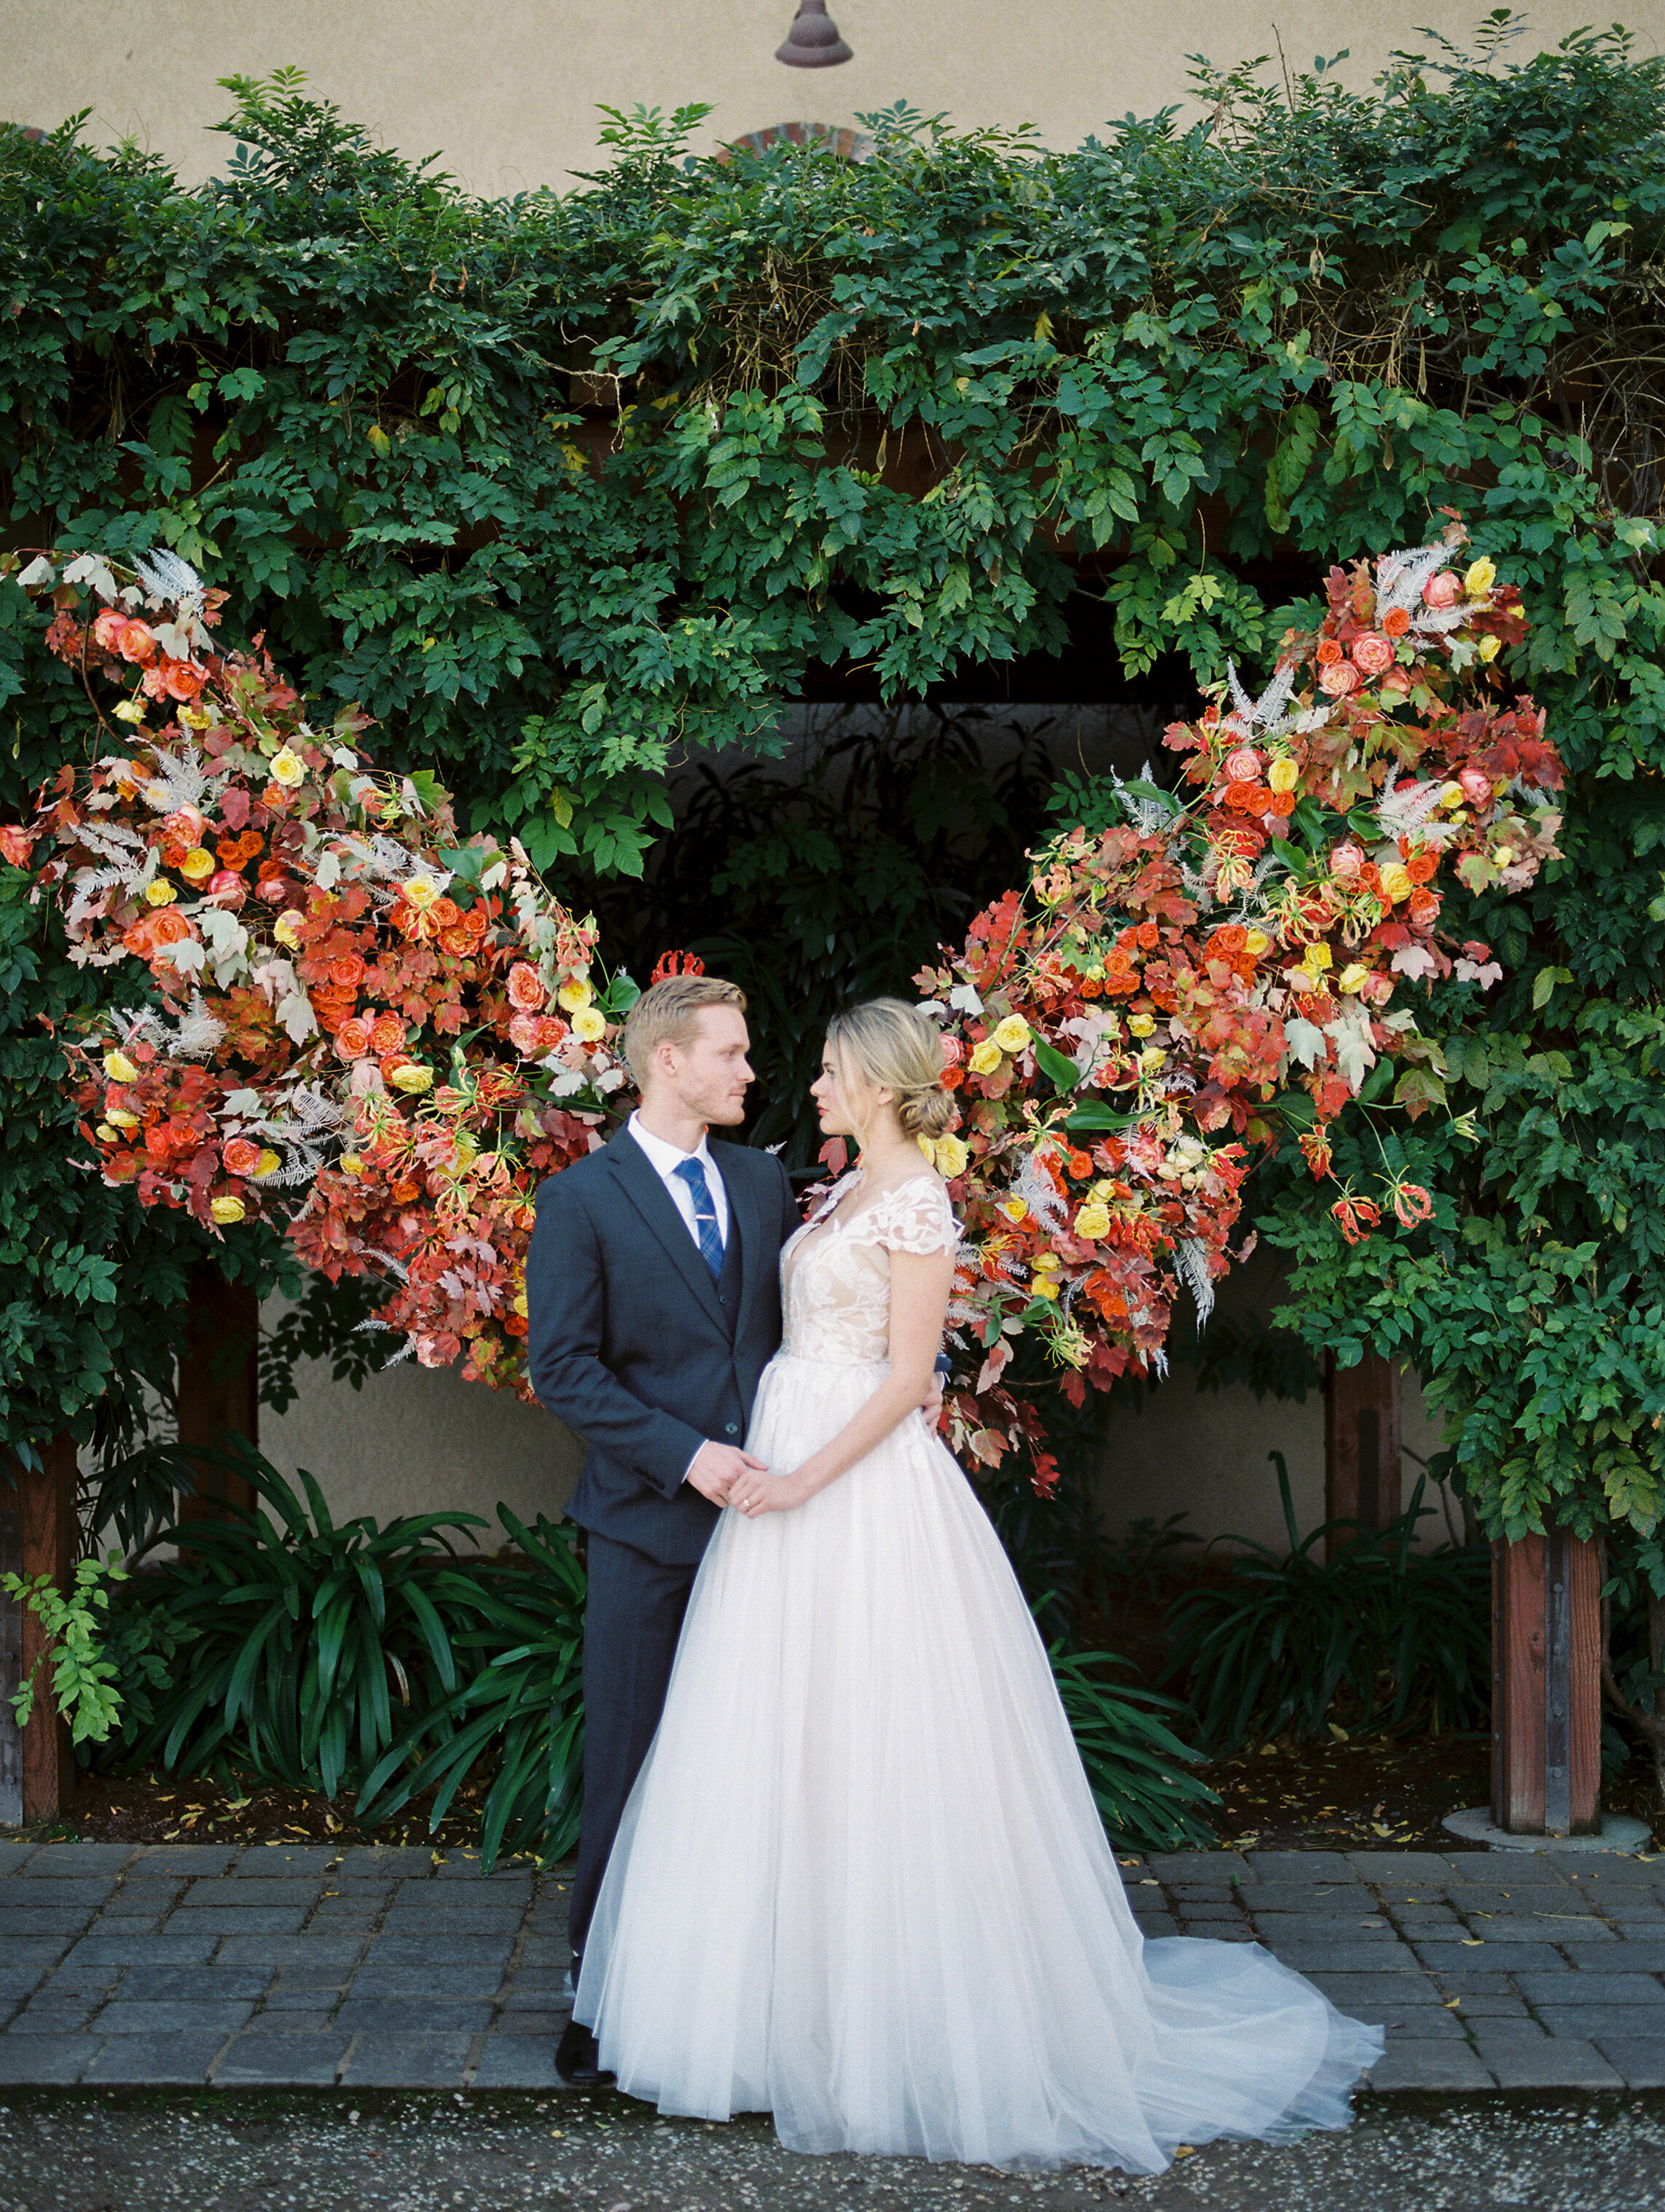 Fall inspired wedding couple photo shoot idea with gorgeous backdrop and bridal gown